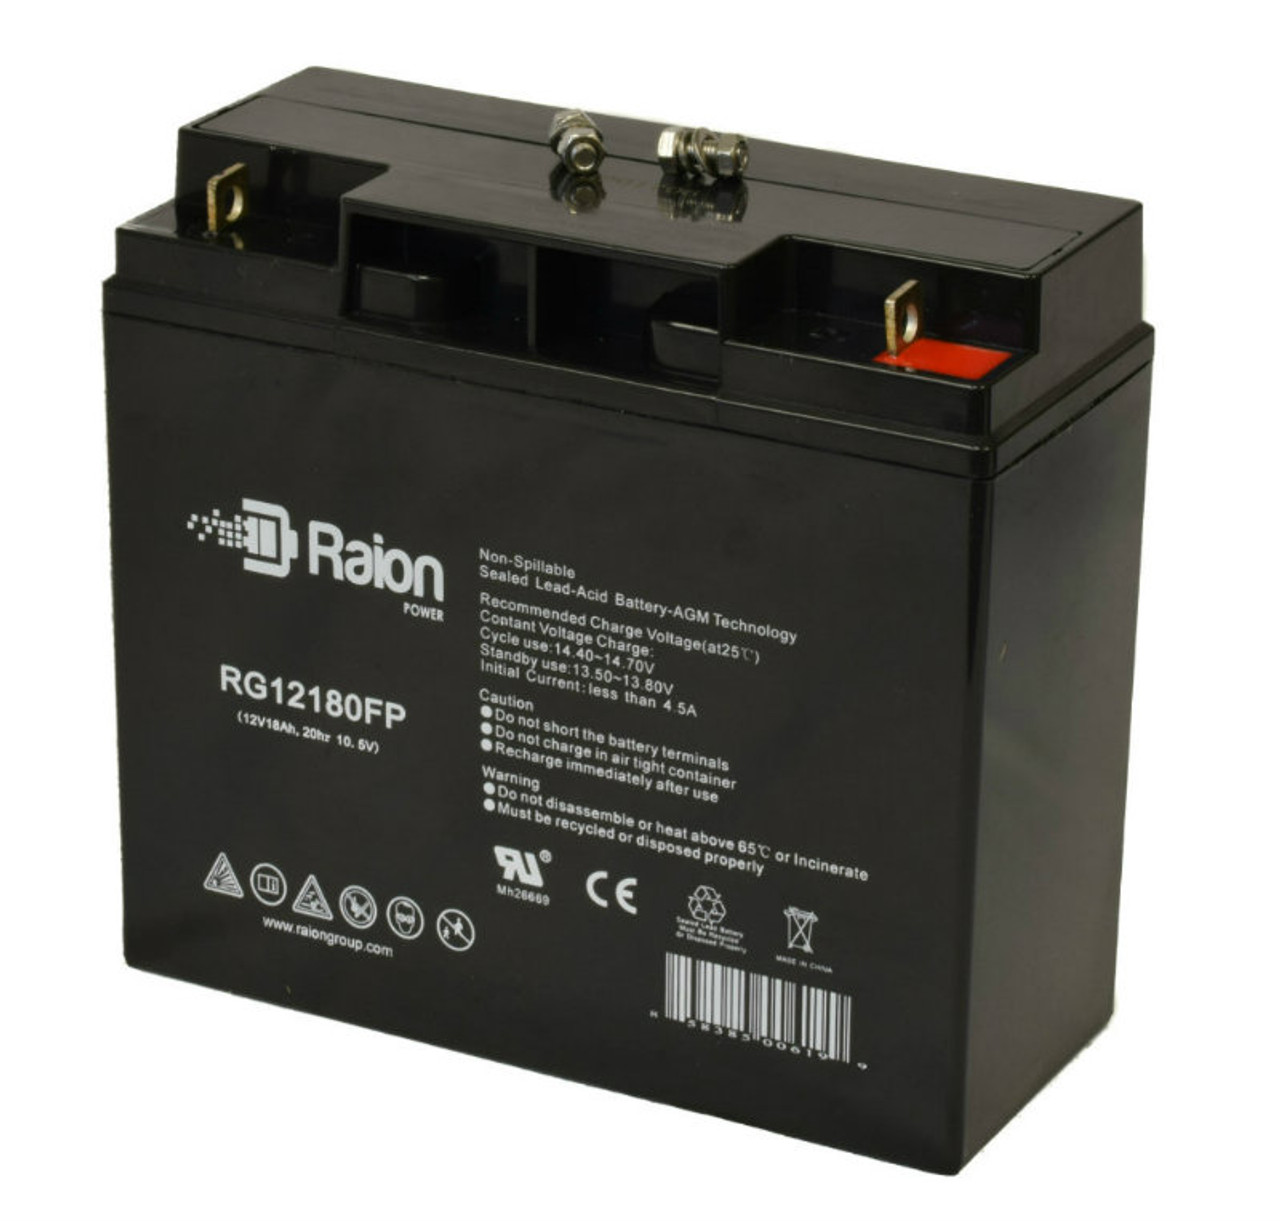 2 Pack Of Raion Power RG12180FP 12V 18Ah Replacement Batteries For Amigo RT Express Mobility Scooter